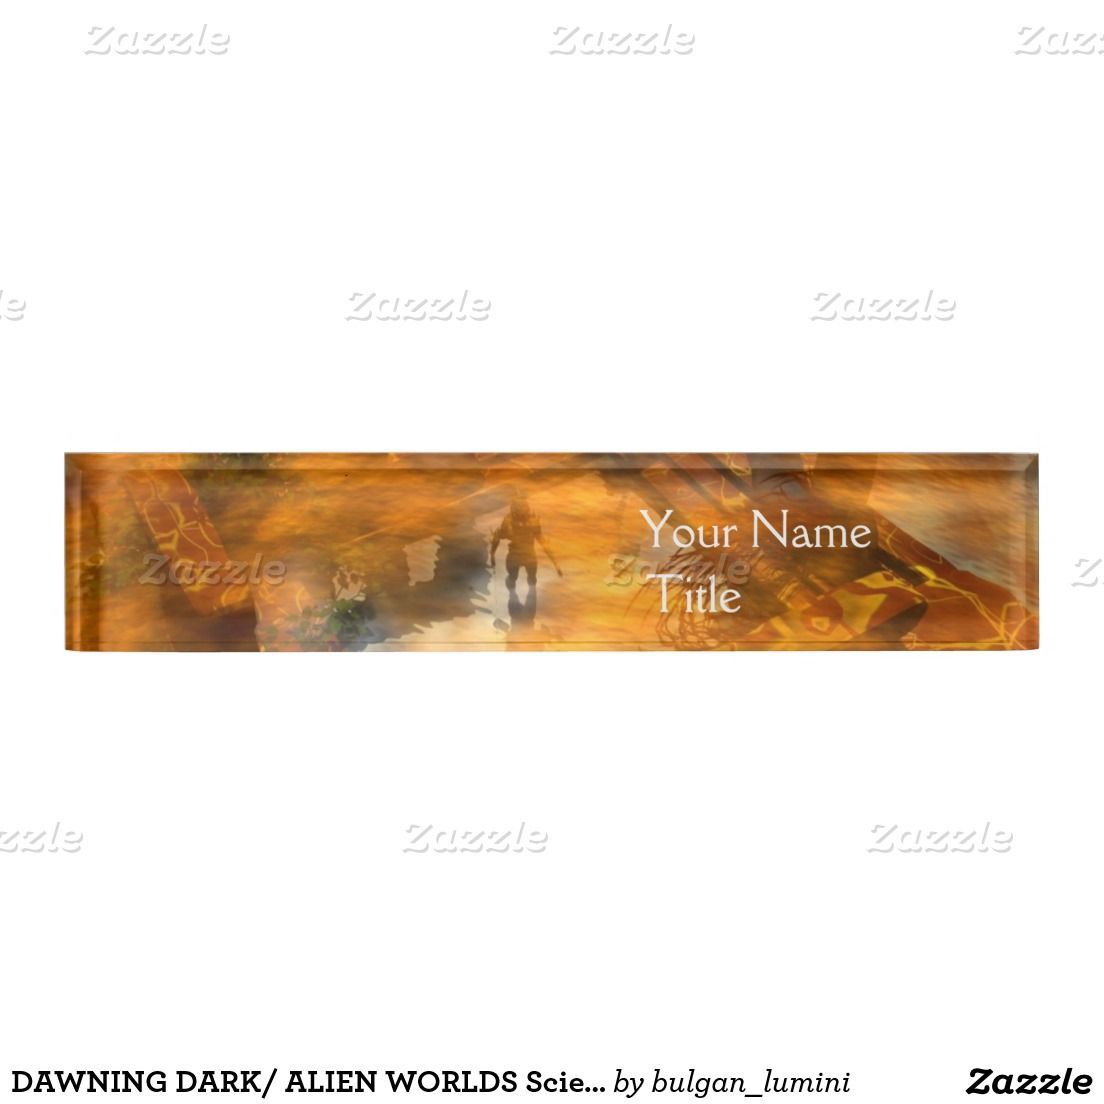 DAWNING DARK/ ALIEN WORLDS Science Fiction,Sci-Fi Desk Name Plate ...